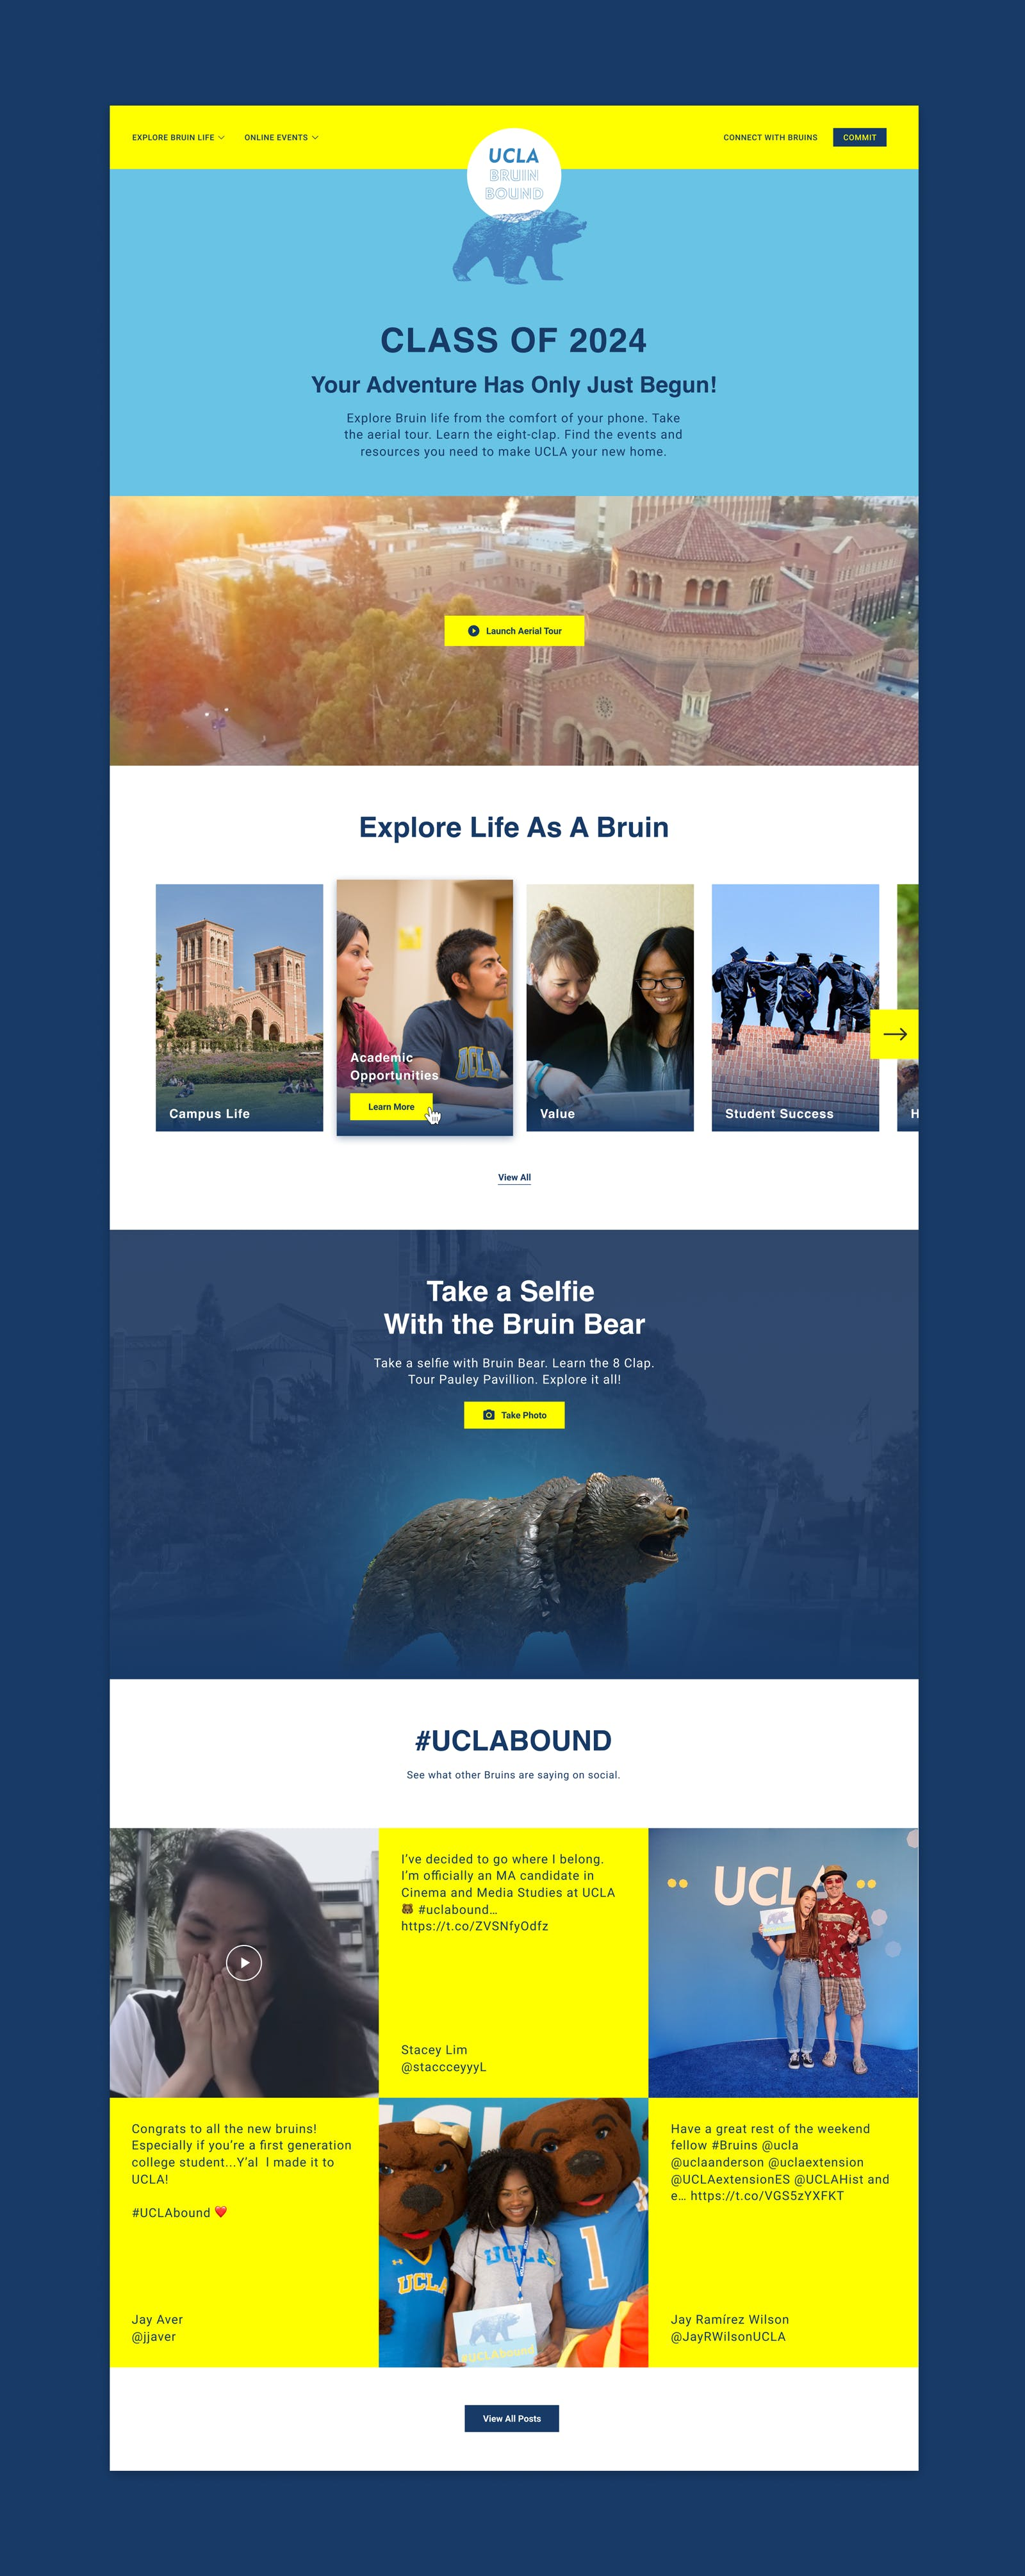 """UCLA Bruin Bound homepage design on a blue background. Top section has the UCLA Bruin Bound logo and text """"Class of 2024 Your Adventure Has Only Just Begun"""". Below that is an aerial shot of UCLA campus, then a carousel of images about each part of attending the UCLA school (Campus Life, Academic Opportunities, Value, Student Success). Then there is a section to Take a Selfie with the Bruin Bear. Last is a social media module of Instagram images and tweets."""